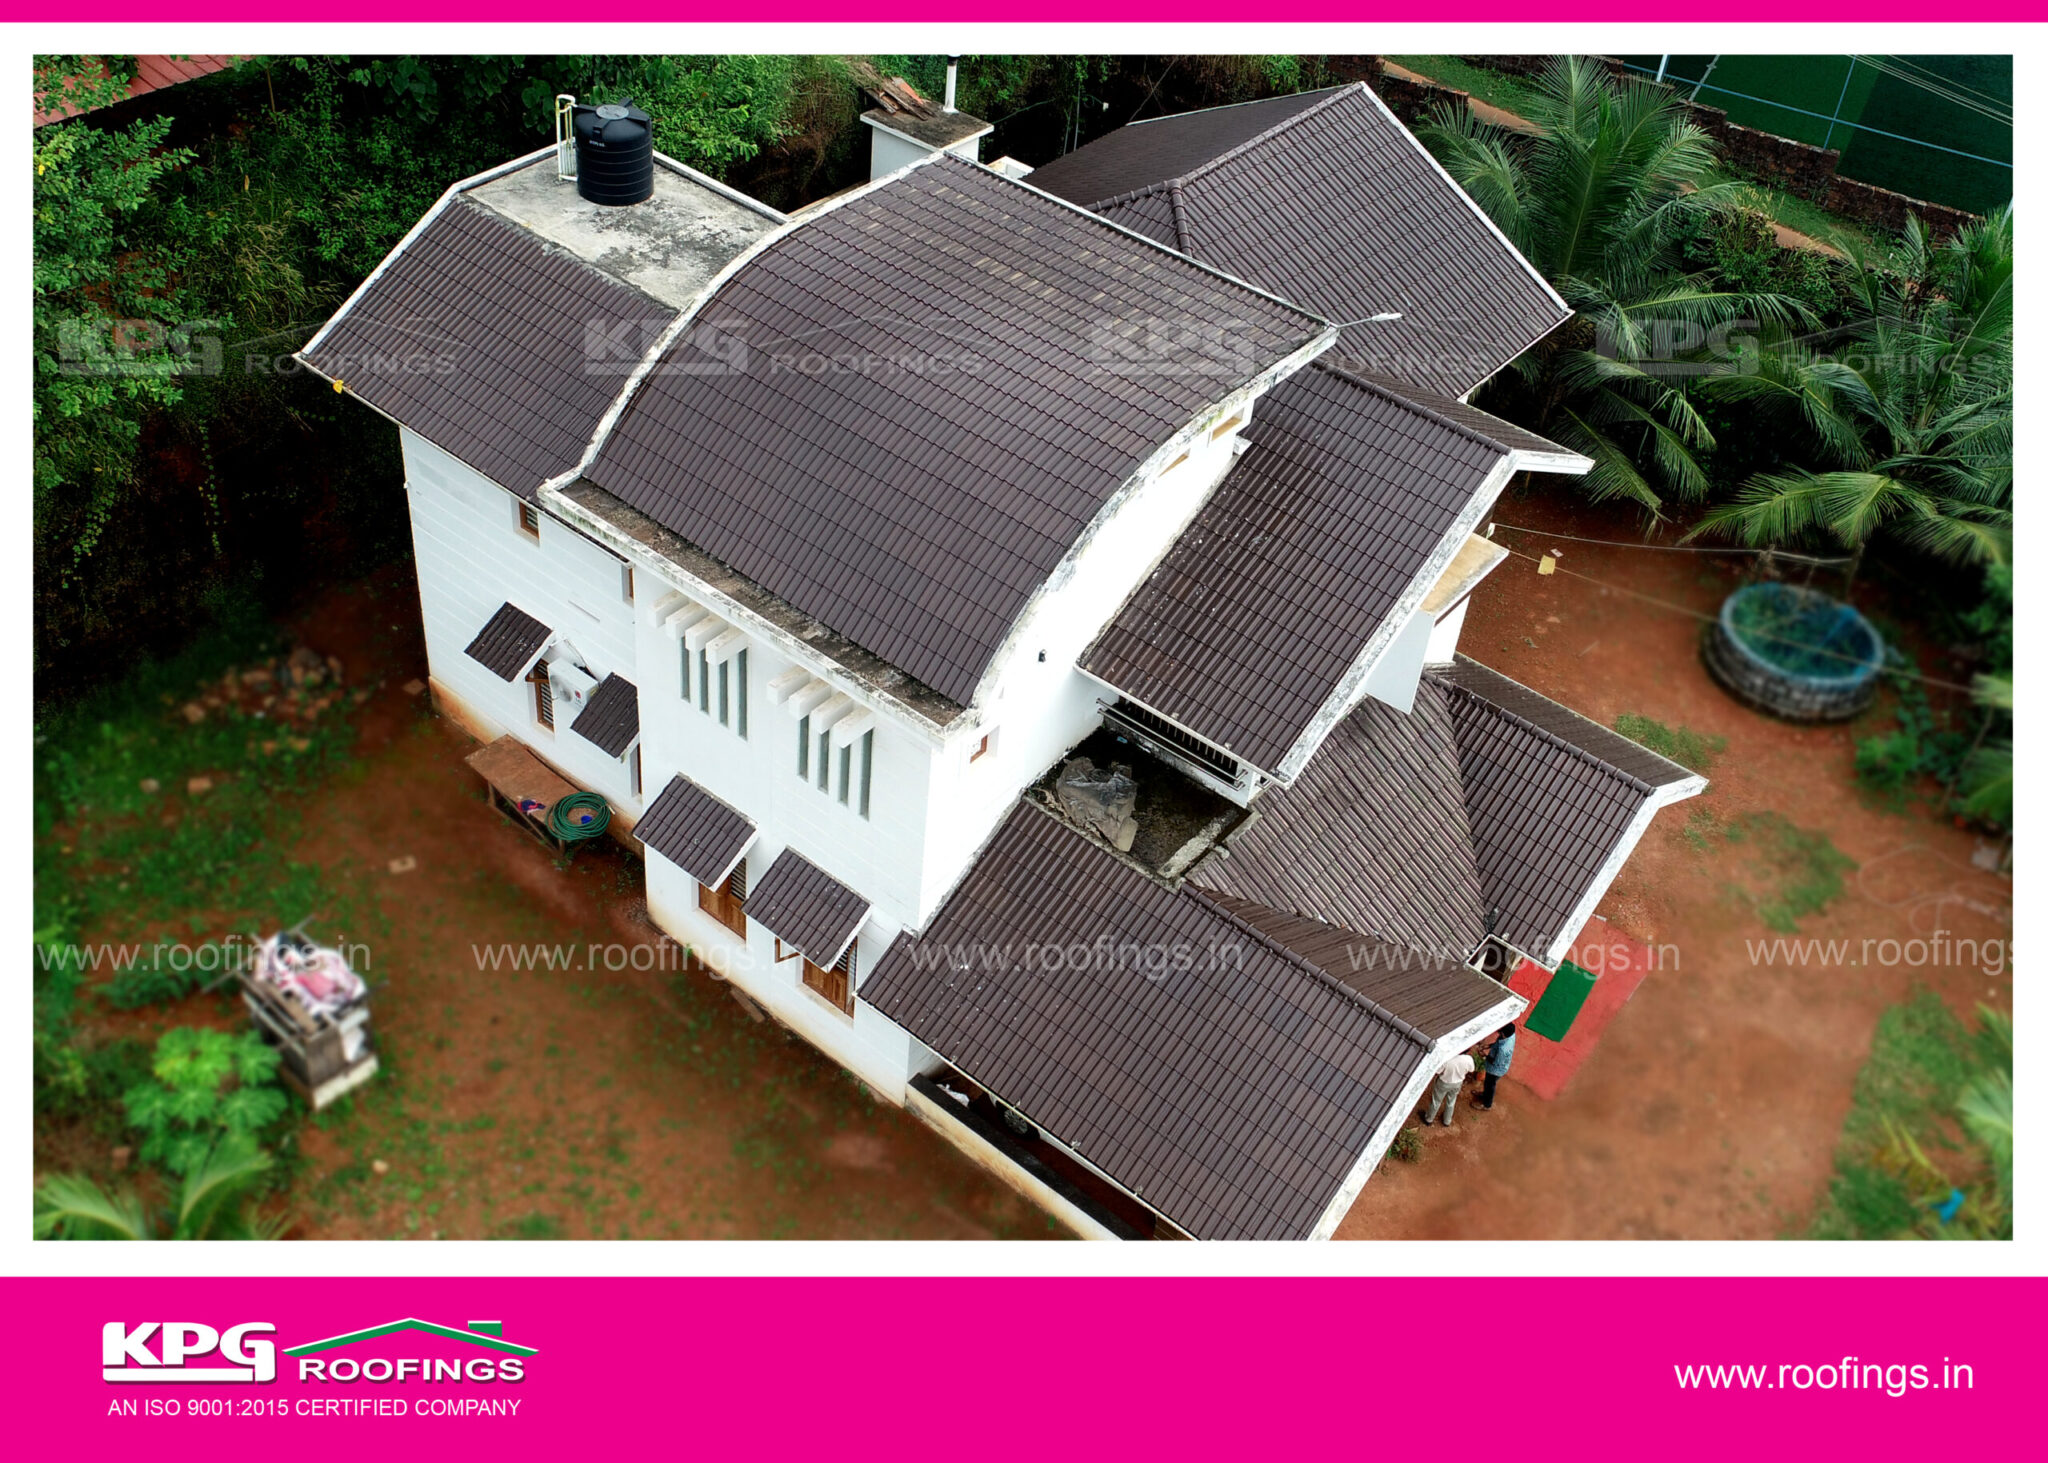 kerala roof tiles 01